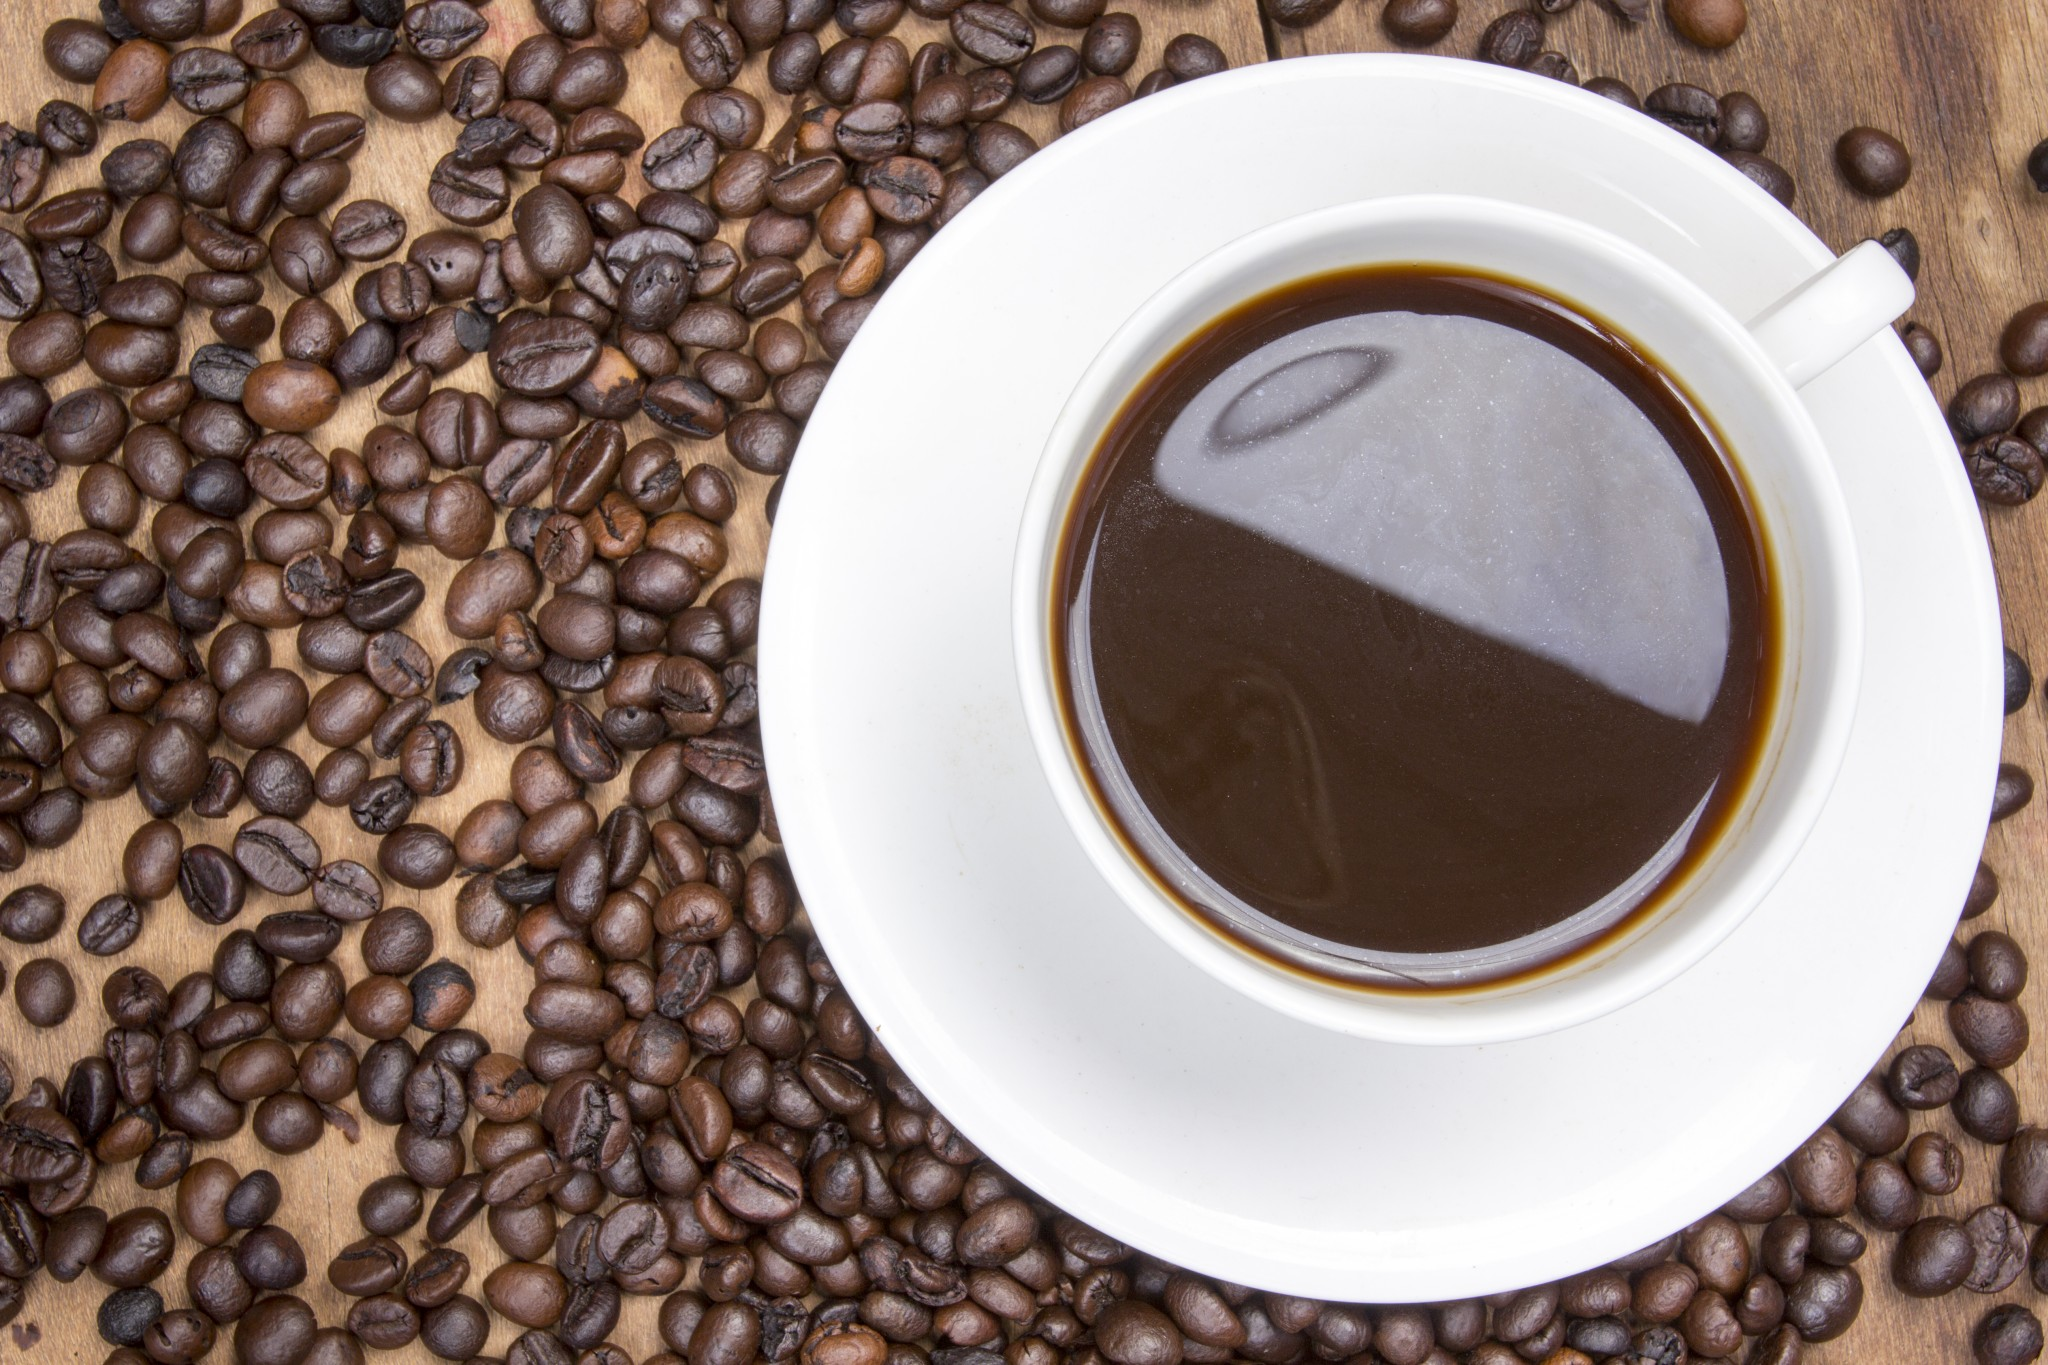 How Can Coffee Consumption Be an Economic Indicator?